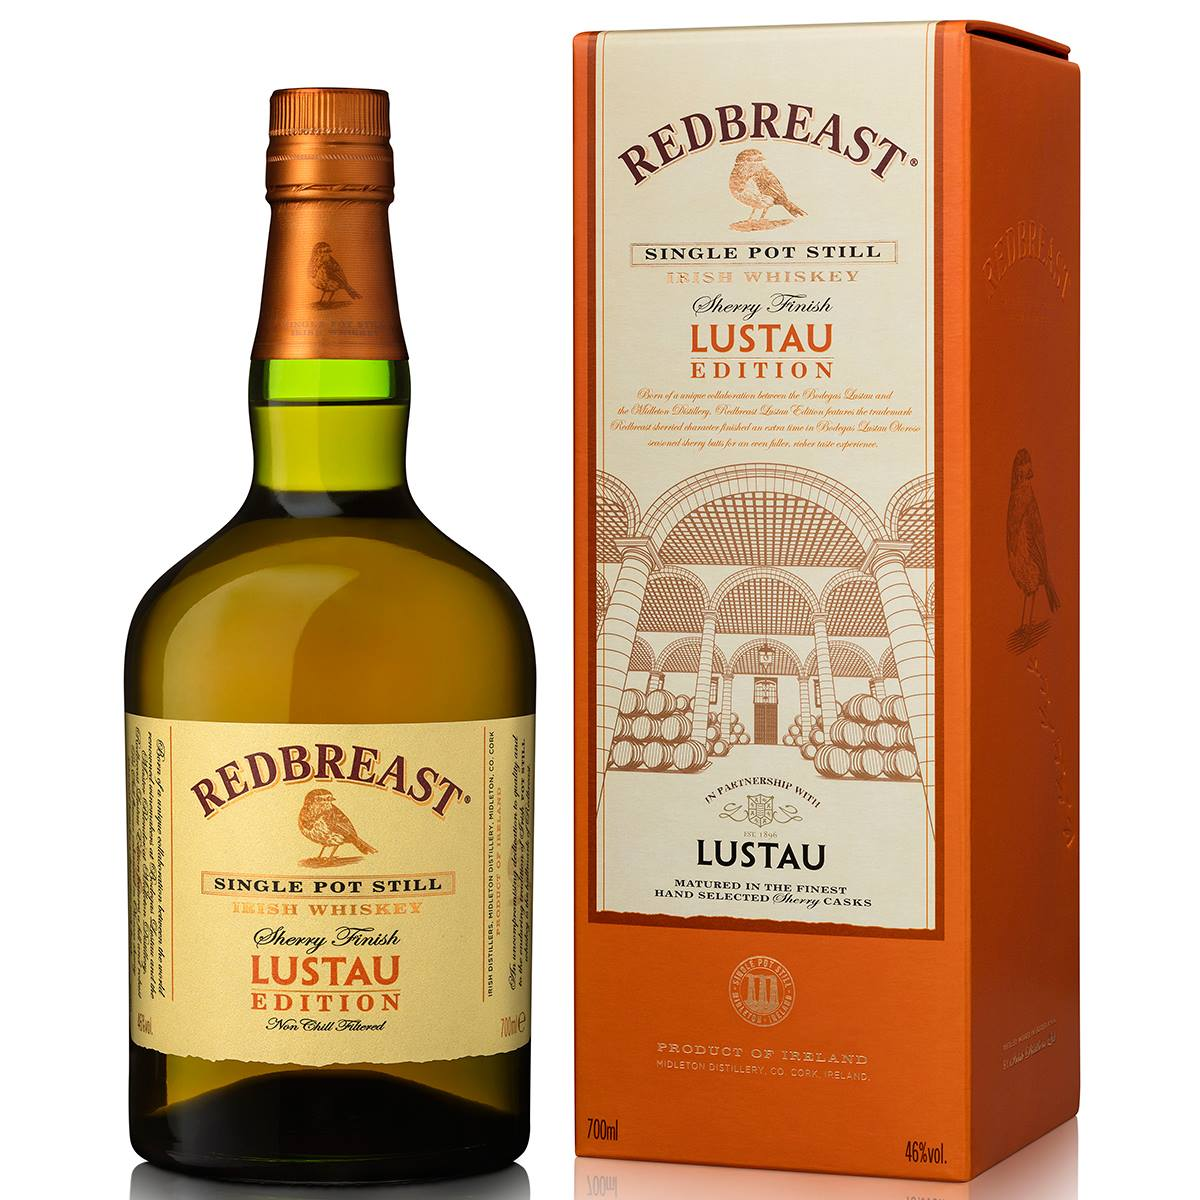 Redbreast Sherry Finish Lustau Edition